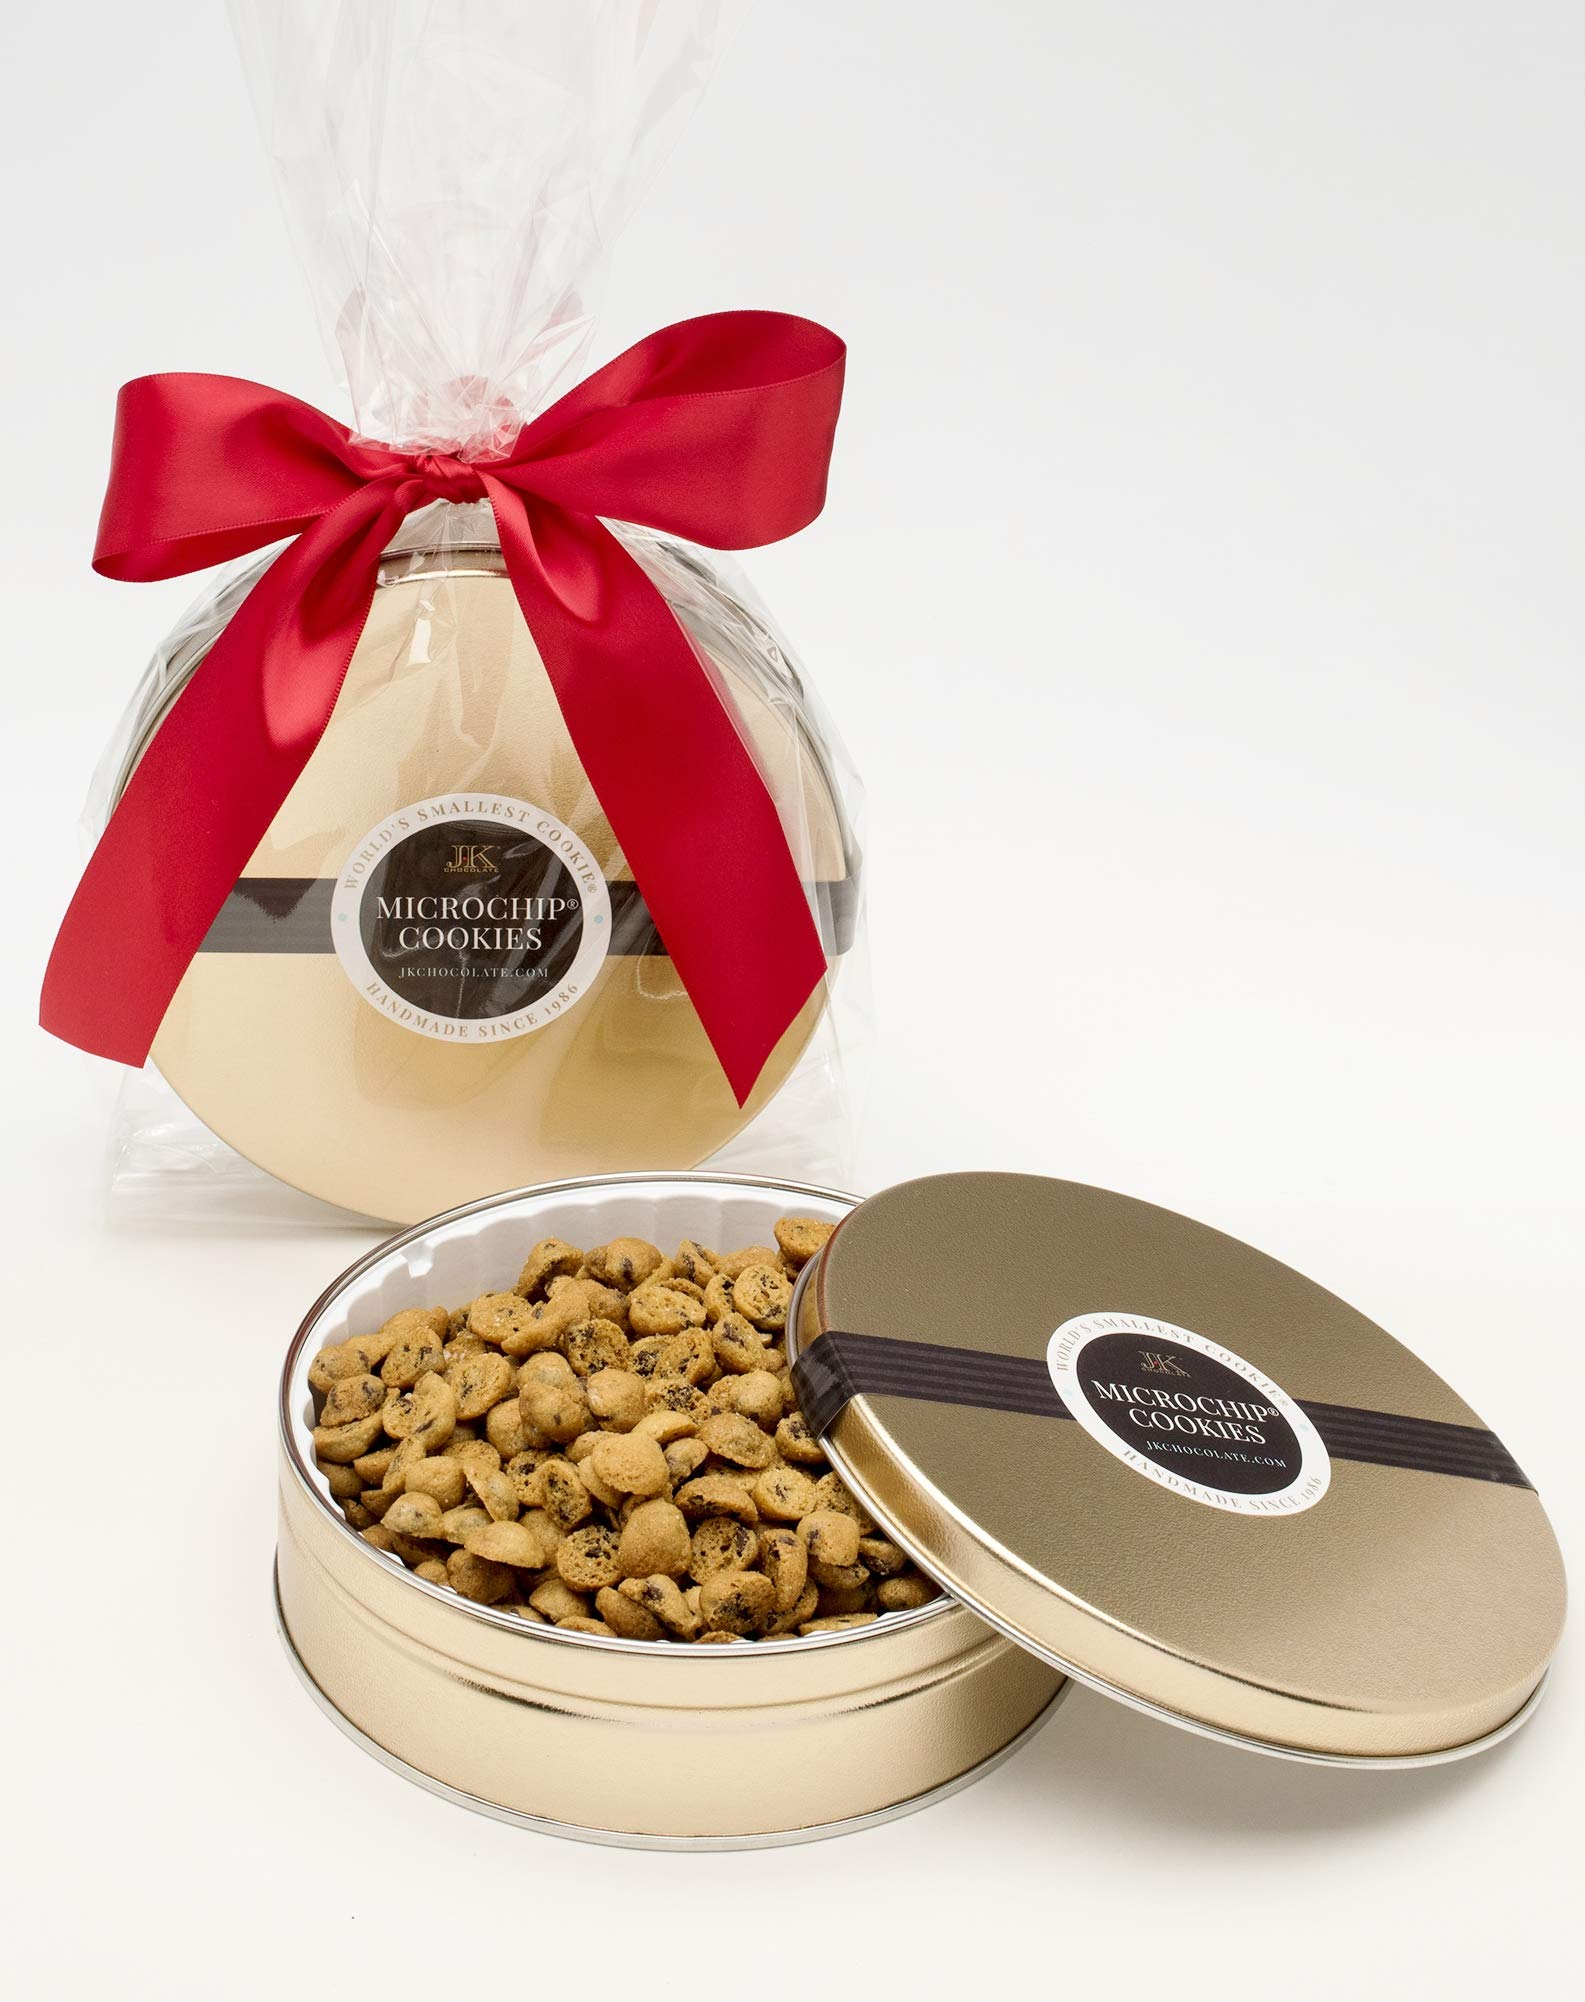 The World's Tiniest, Most Irresistible Chocolate Chip Cookies - Be The Party Favorite & Give The Gift Of Gourmet Microchips - 10oz Fresh Mini Cookies In Premium Tin - Small Batch Handmade In Texas